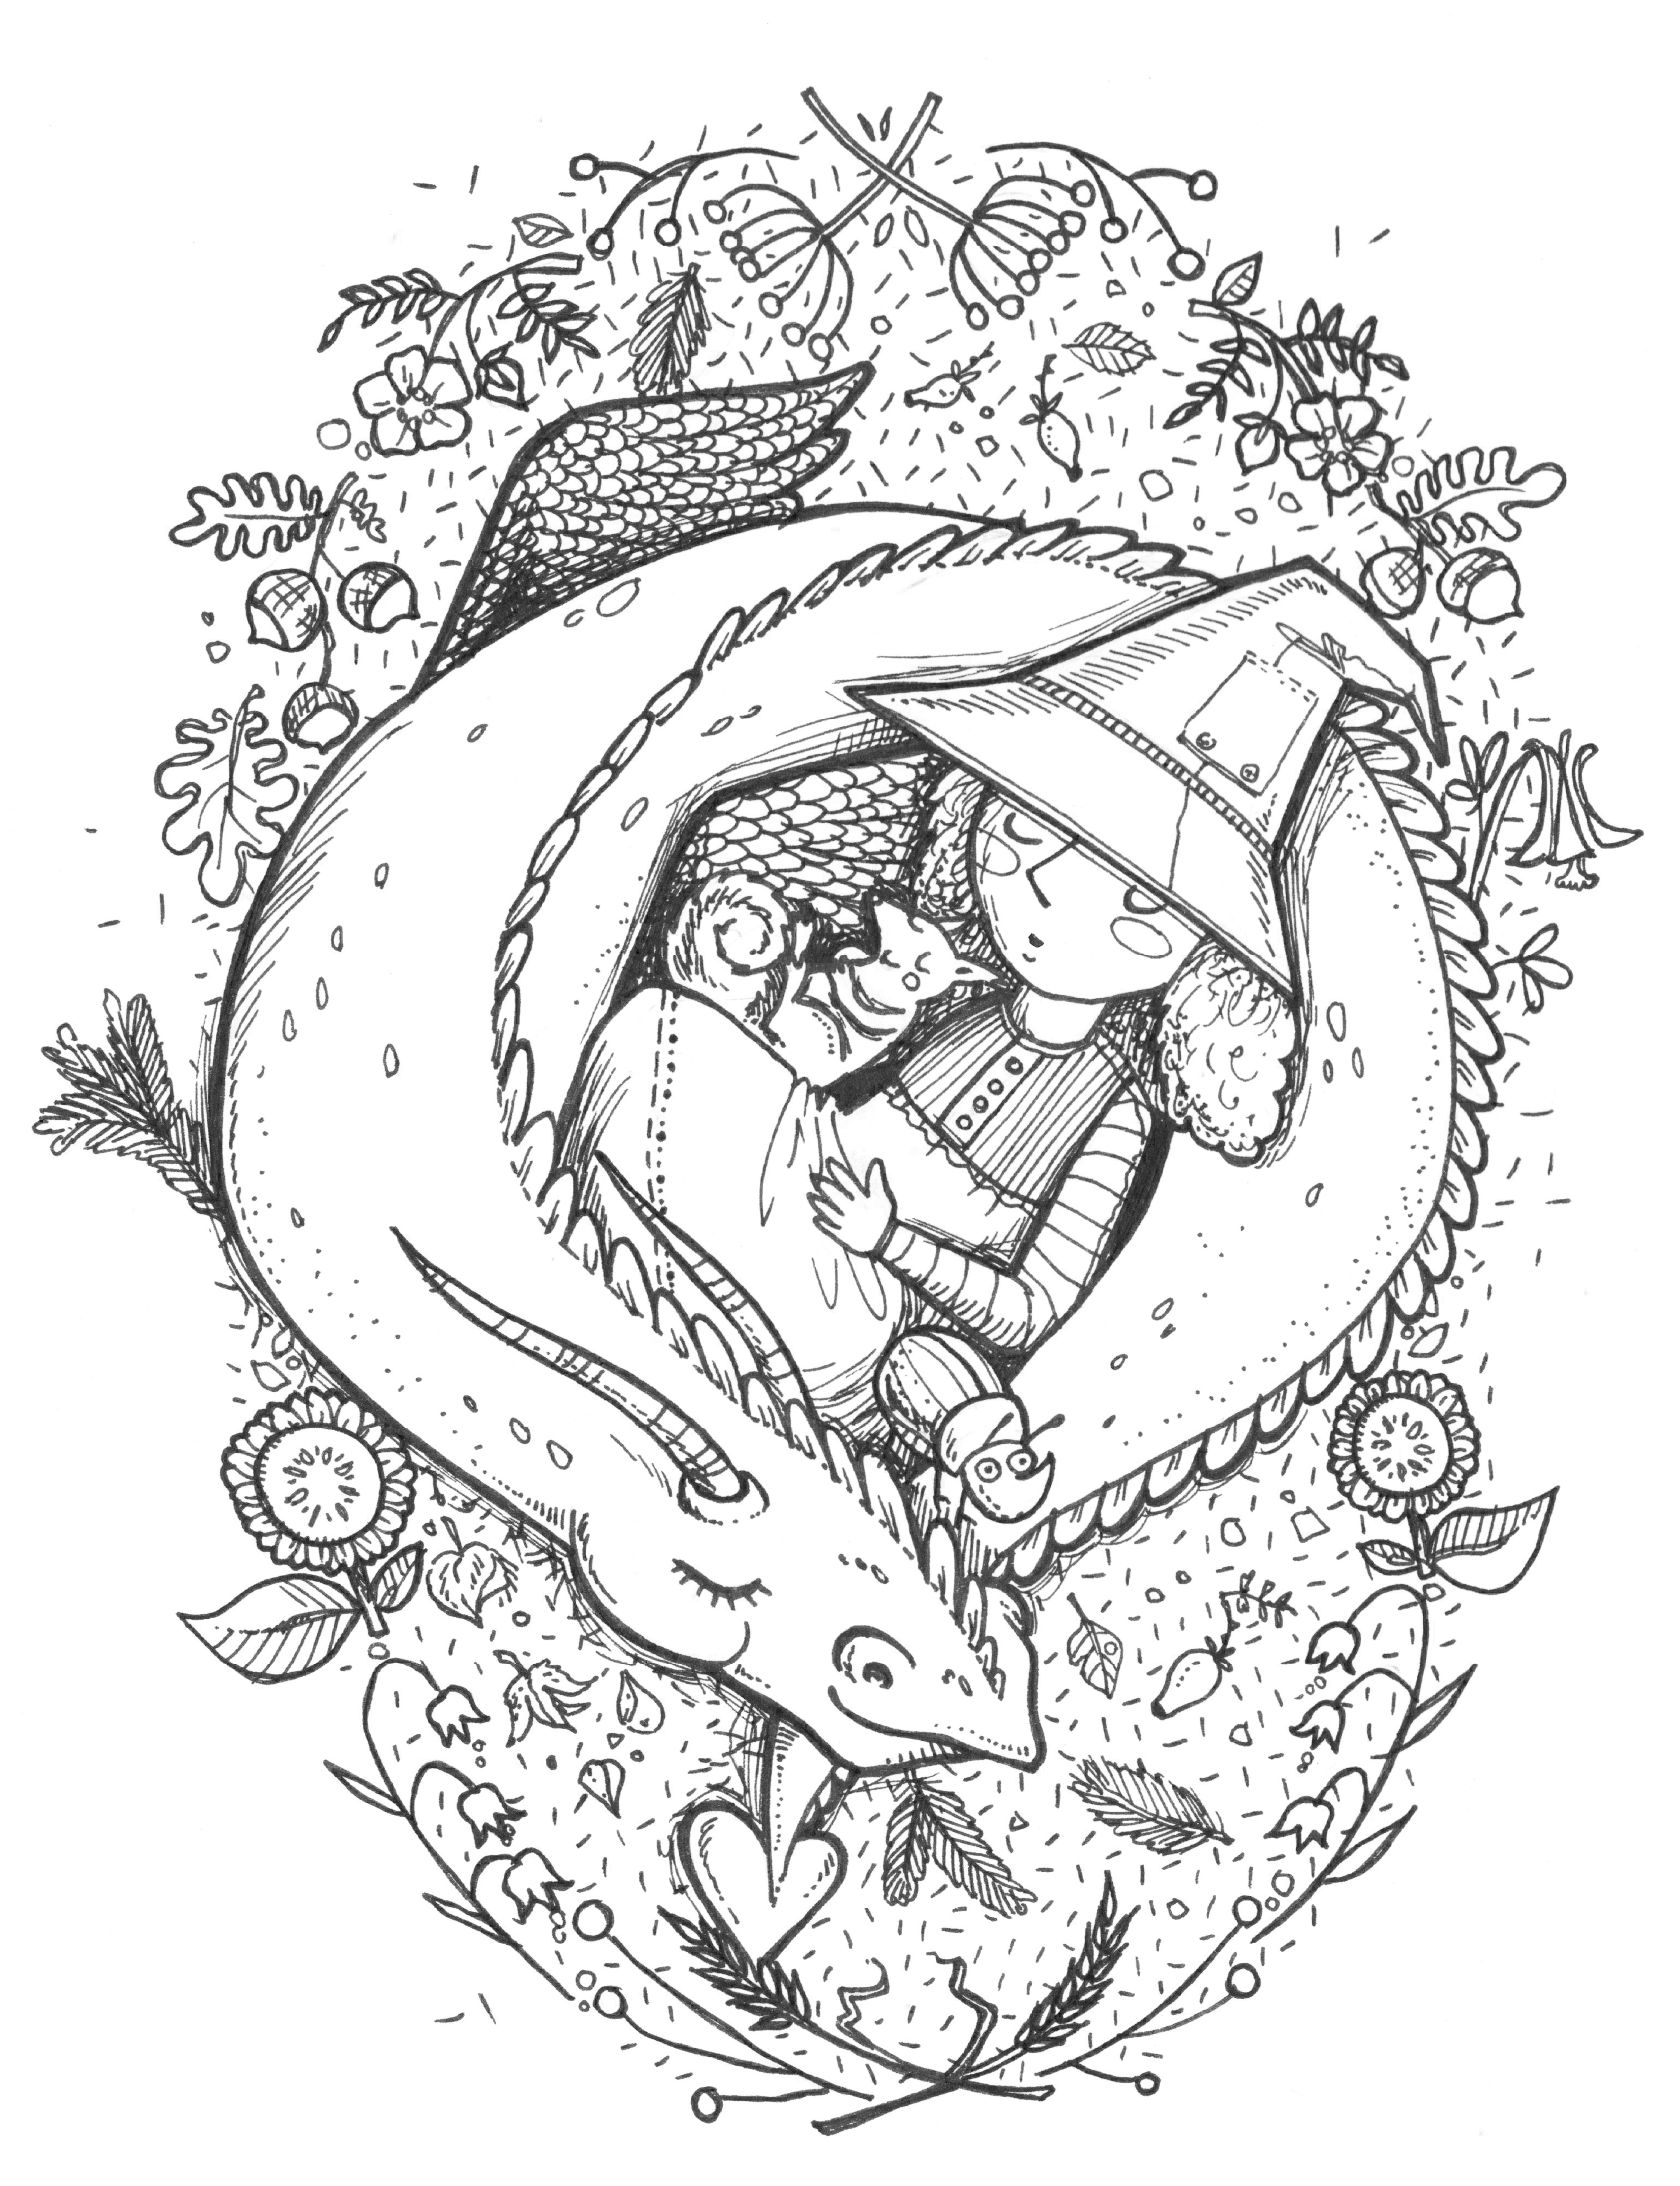 Tusche, Tuscheillustration, Simone Rose Illustration, Kinderbuch, Kinder, Kinderbuchillustration, Illustratorin, Hexe, Drache